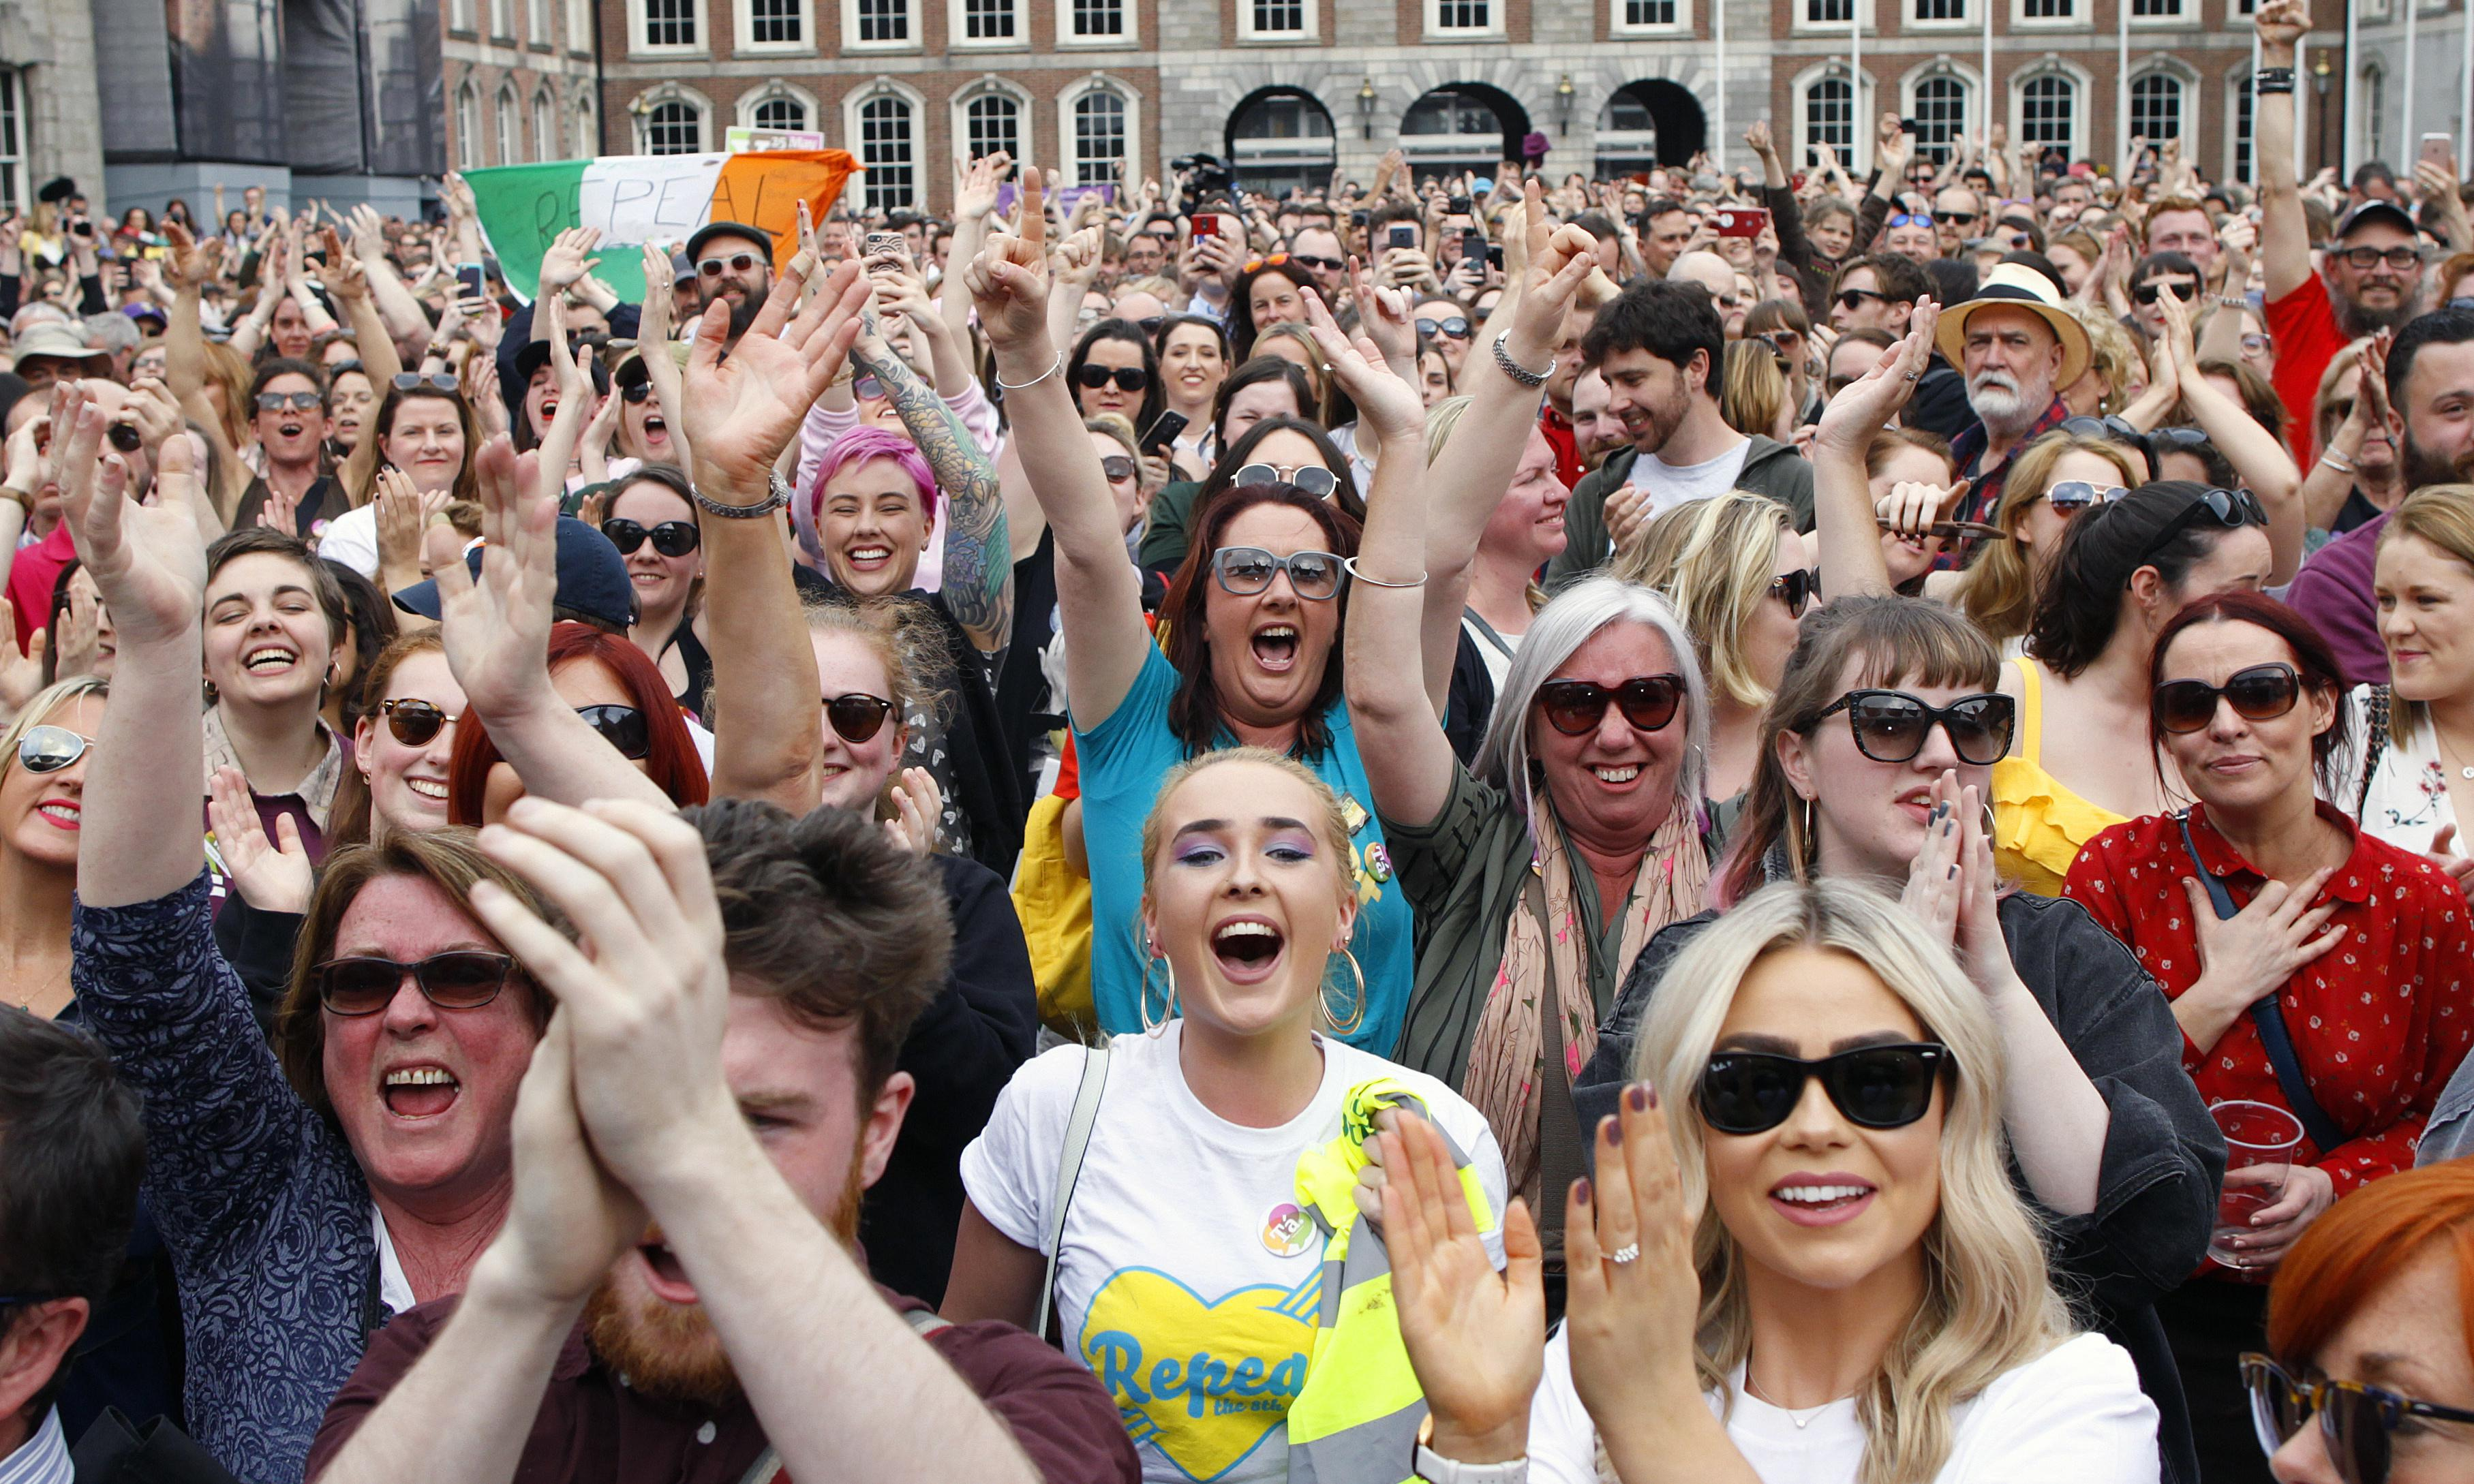 Power to the people – could a citizens' assembly solve the Brexit crisis?